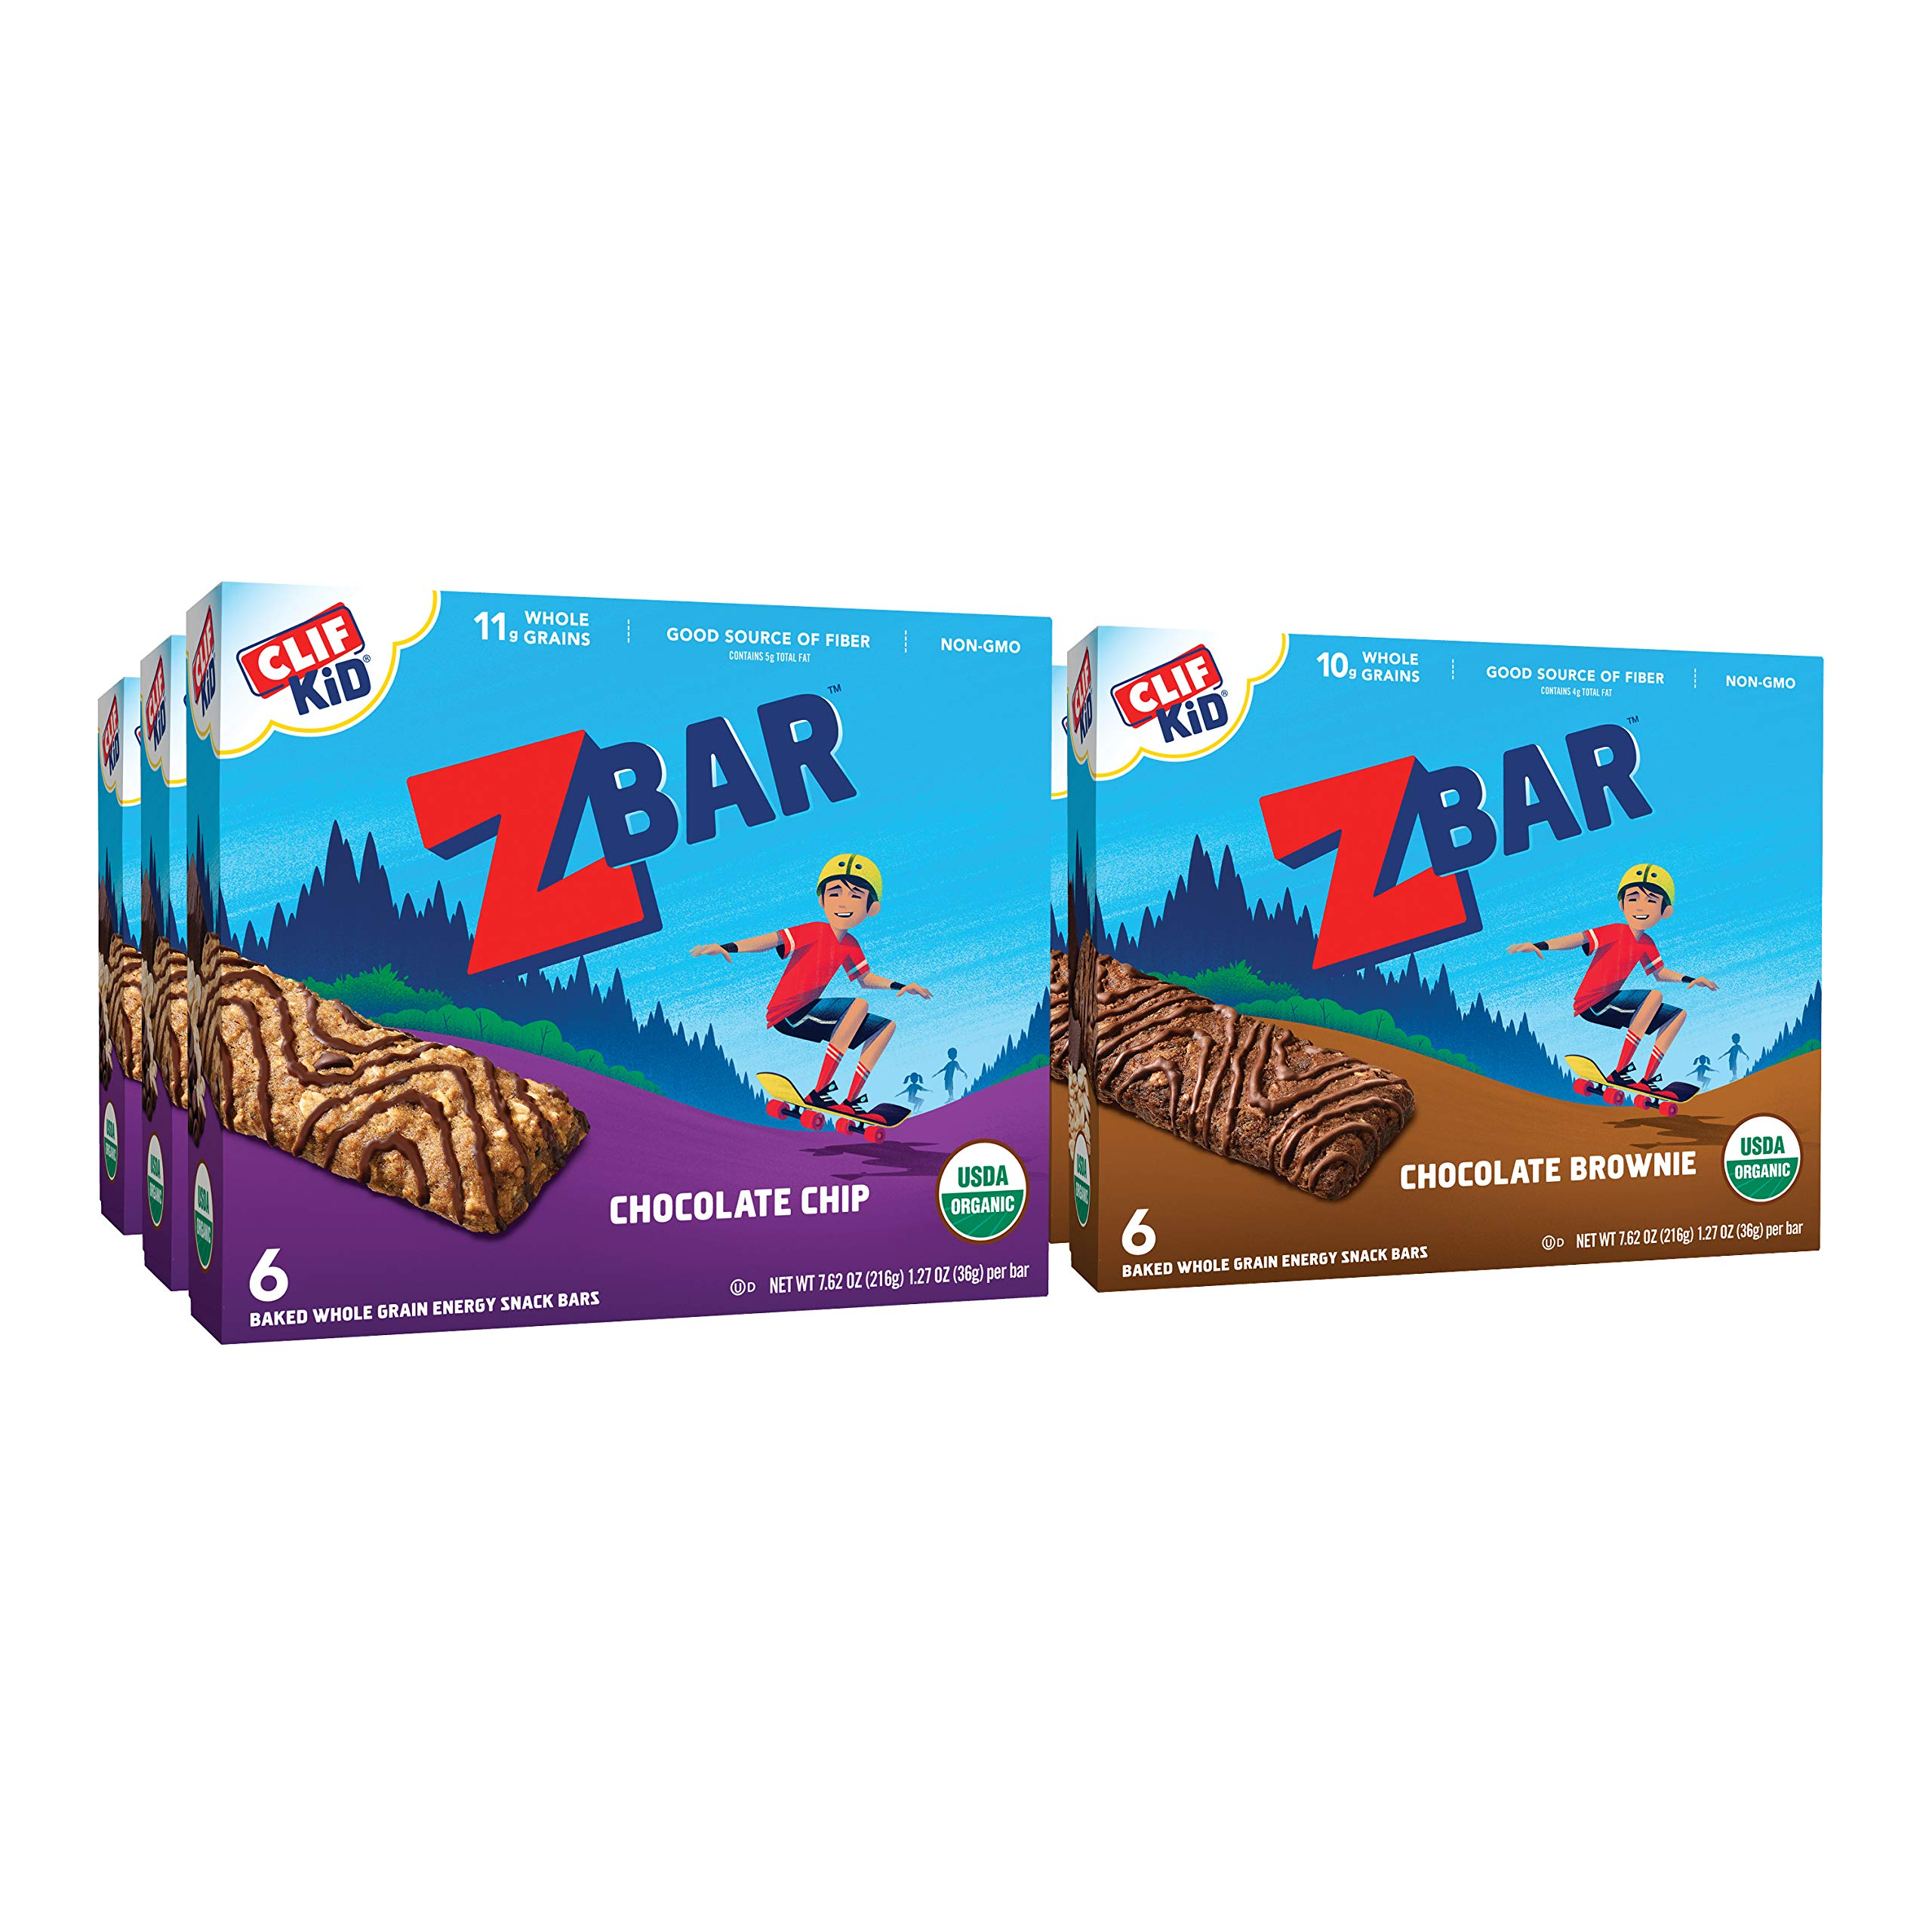 Clif Kid ZBAR - Organic Energy Bars - Value Pack - (1.27 Ounce Snack Bars, 36 Count) by Clif Bar (Image #1)